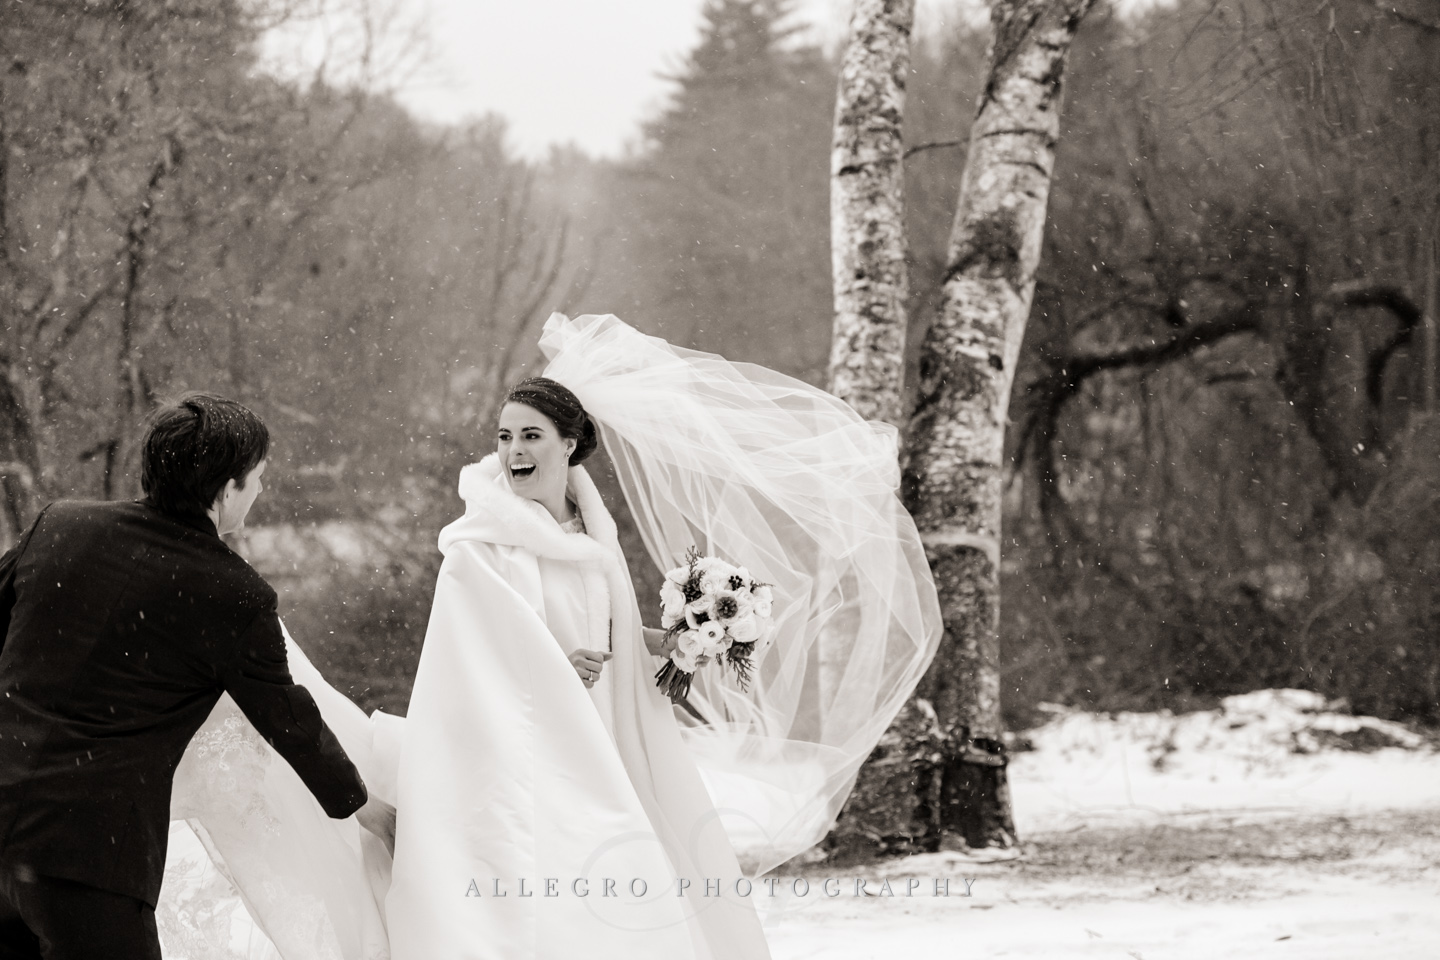 more wind and snow - photo by allegro photography